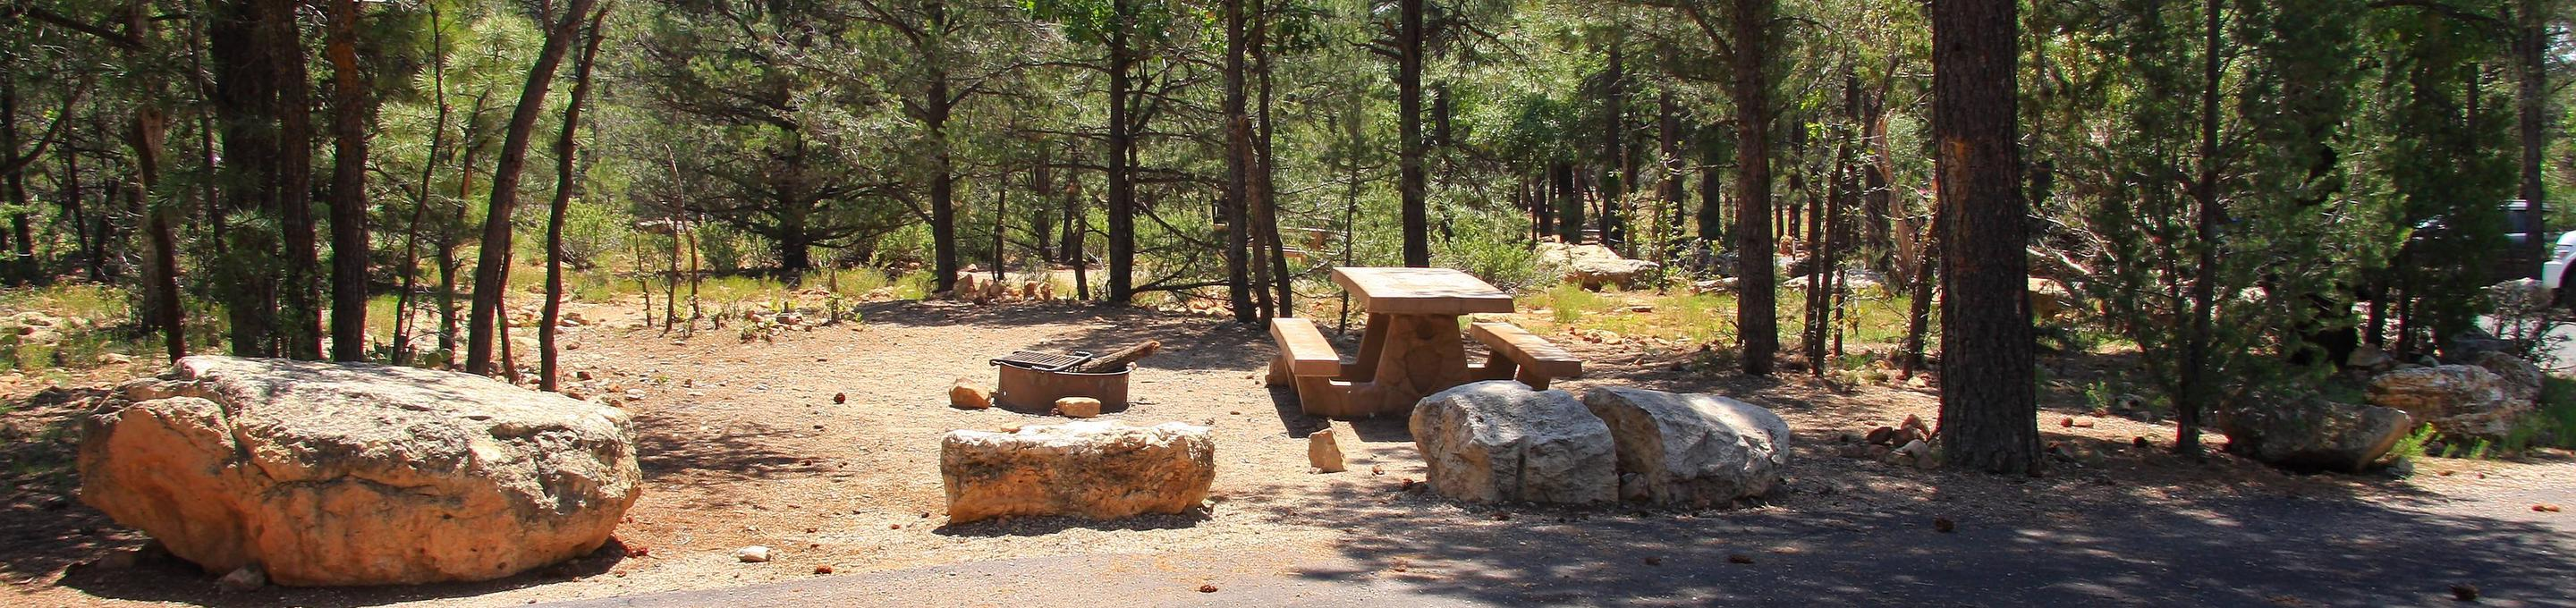 Picnic table, fire pit, and parking spot, Mather CampgroundPicnic table, fire pit, and parking spot for Juniper Loop 137, Mather Campground